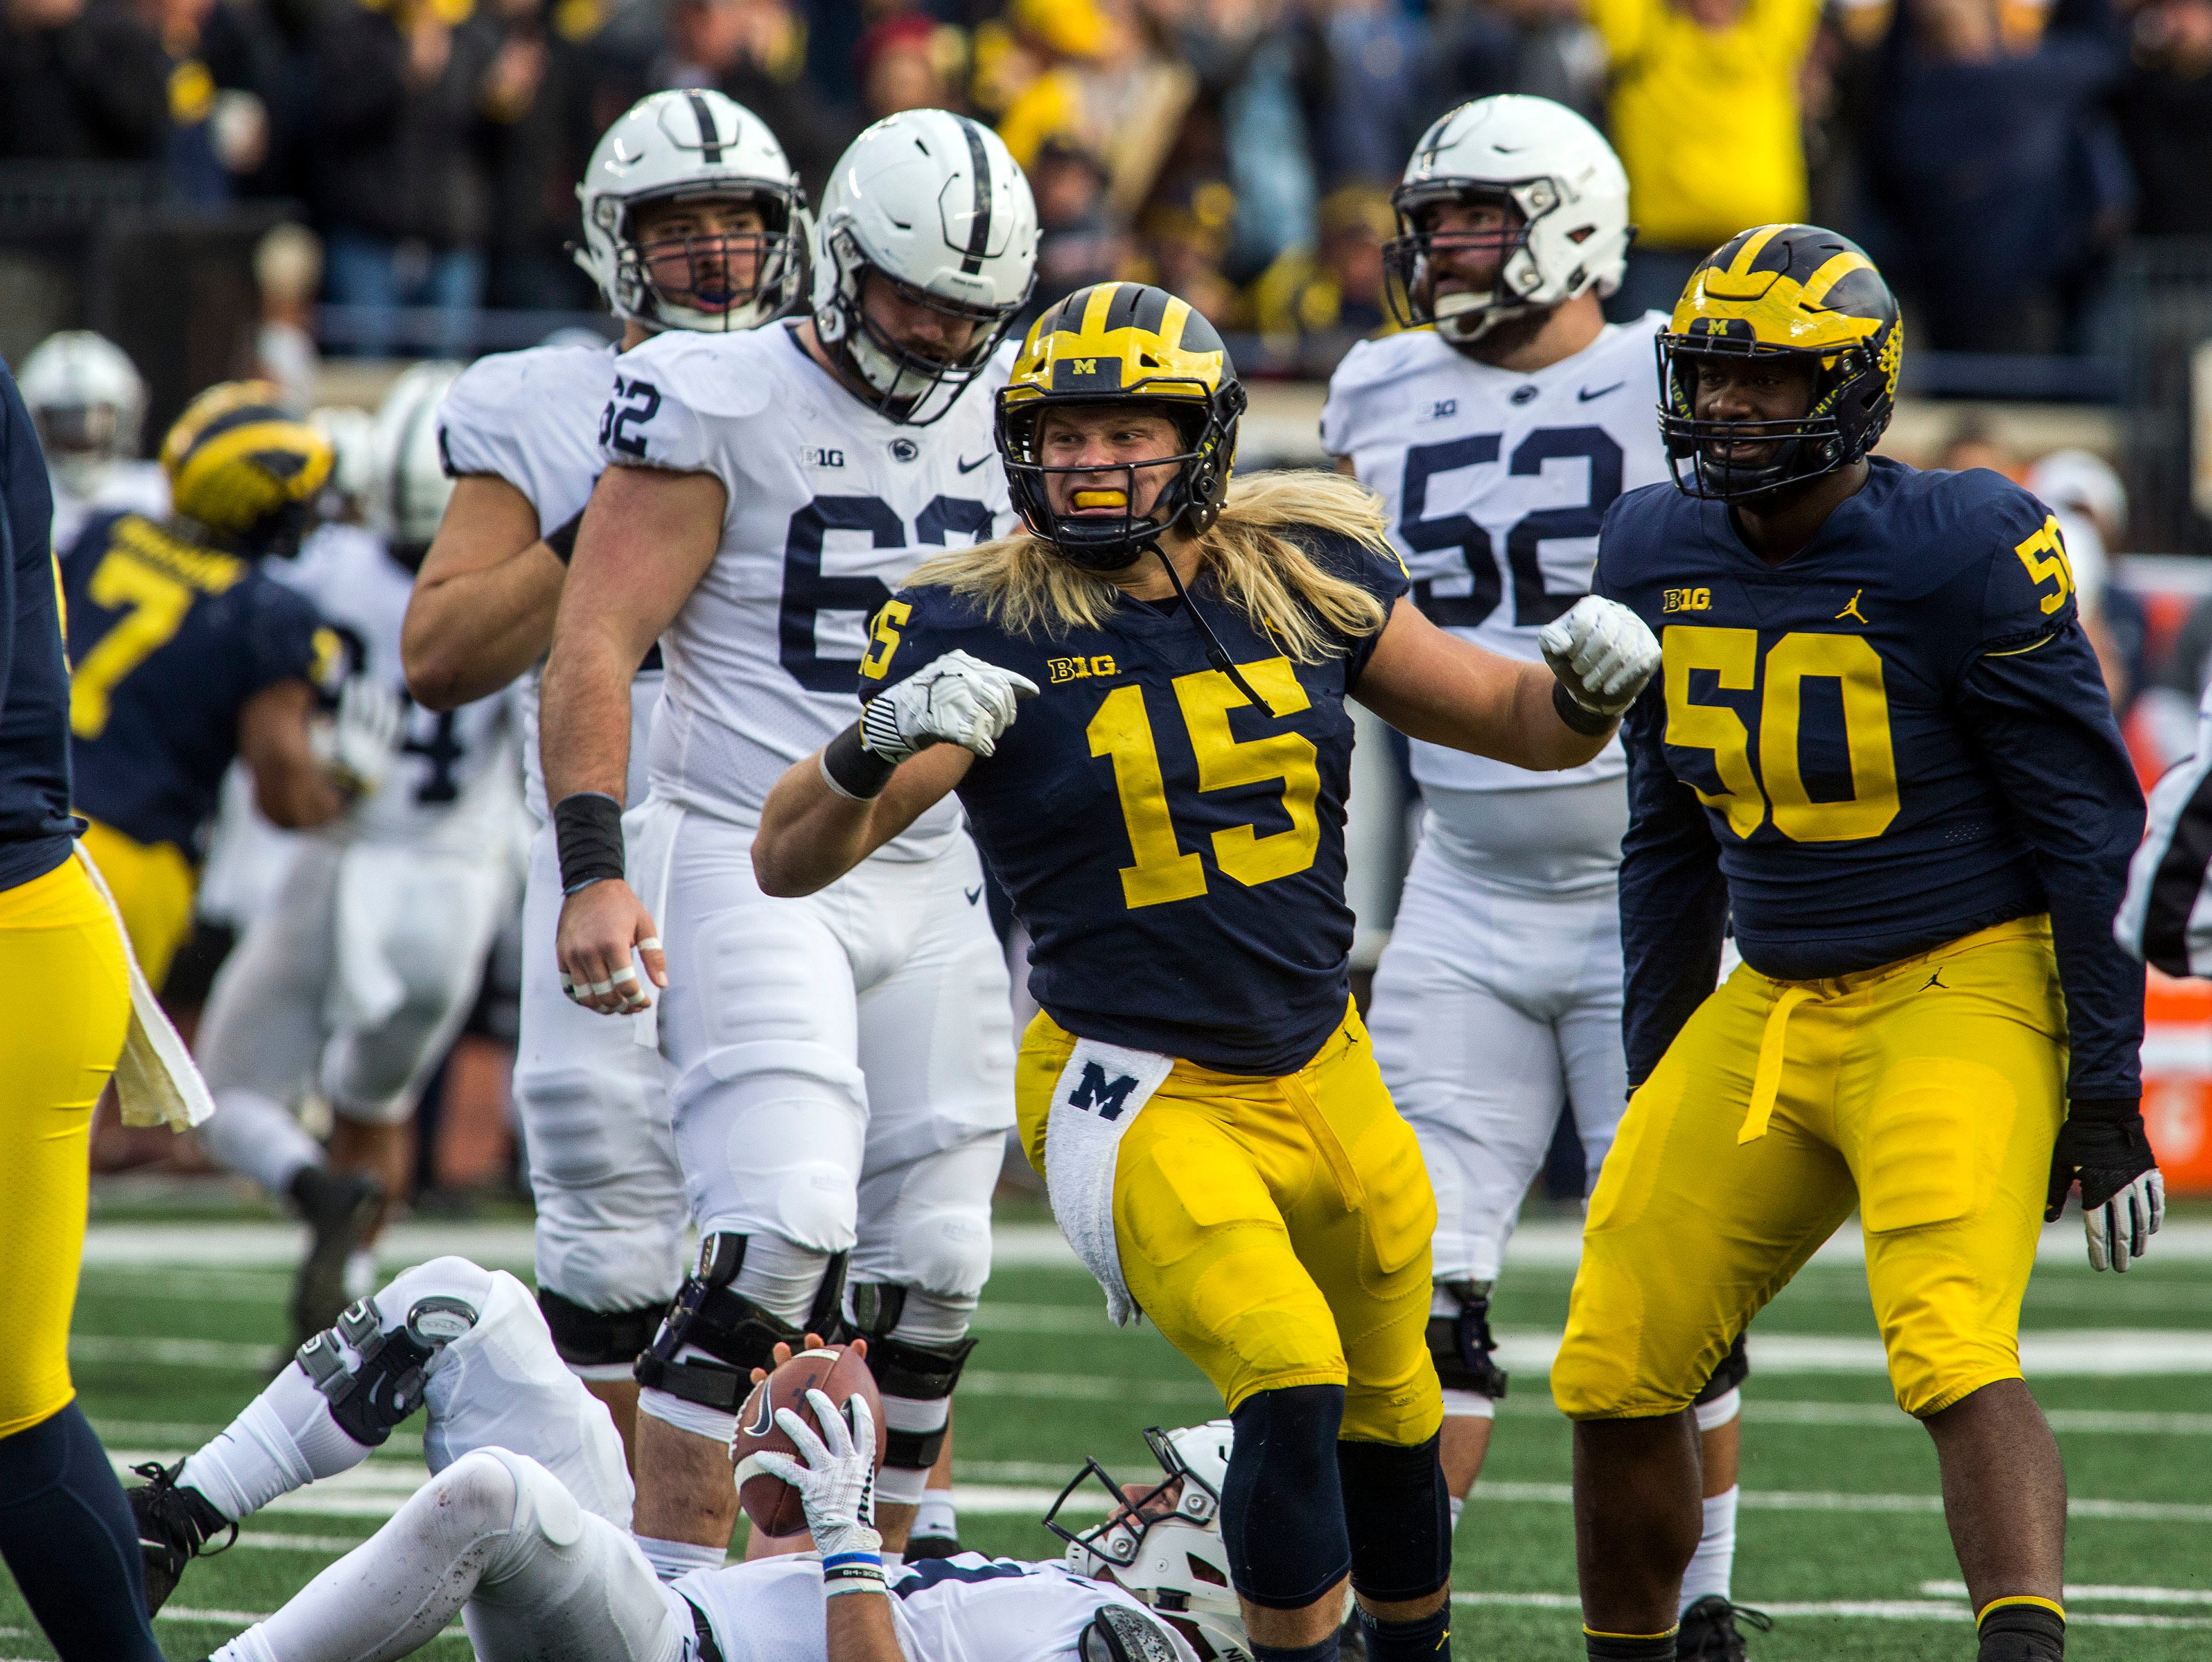 Michigan defensive lineman Chase Winovich (15) celebrates with defensive lineman Michael Dwumfour (50) a sack of Penn State quarterback Trace McSorley, bottom, in the third quarter of an NCAA college football game in Ann Arbor, Mich., Saturday, Nov. 3, 2018. Michigan won 42-7. (AP Photo/Tony Ding)